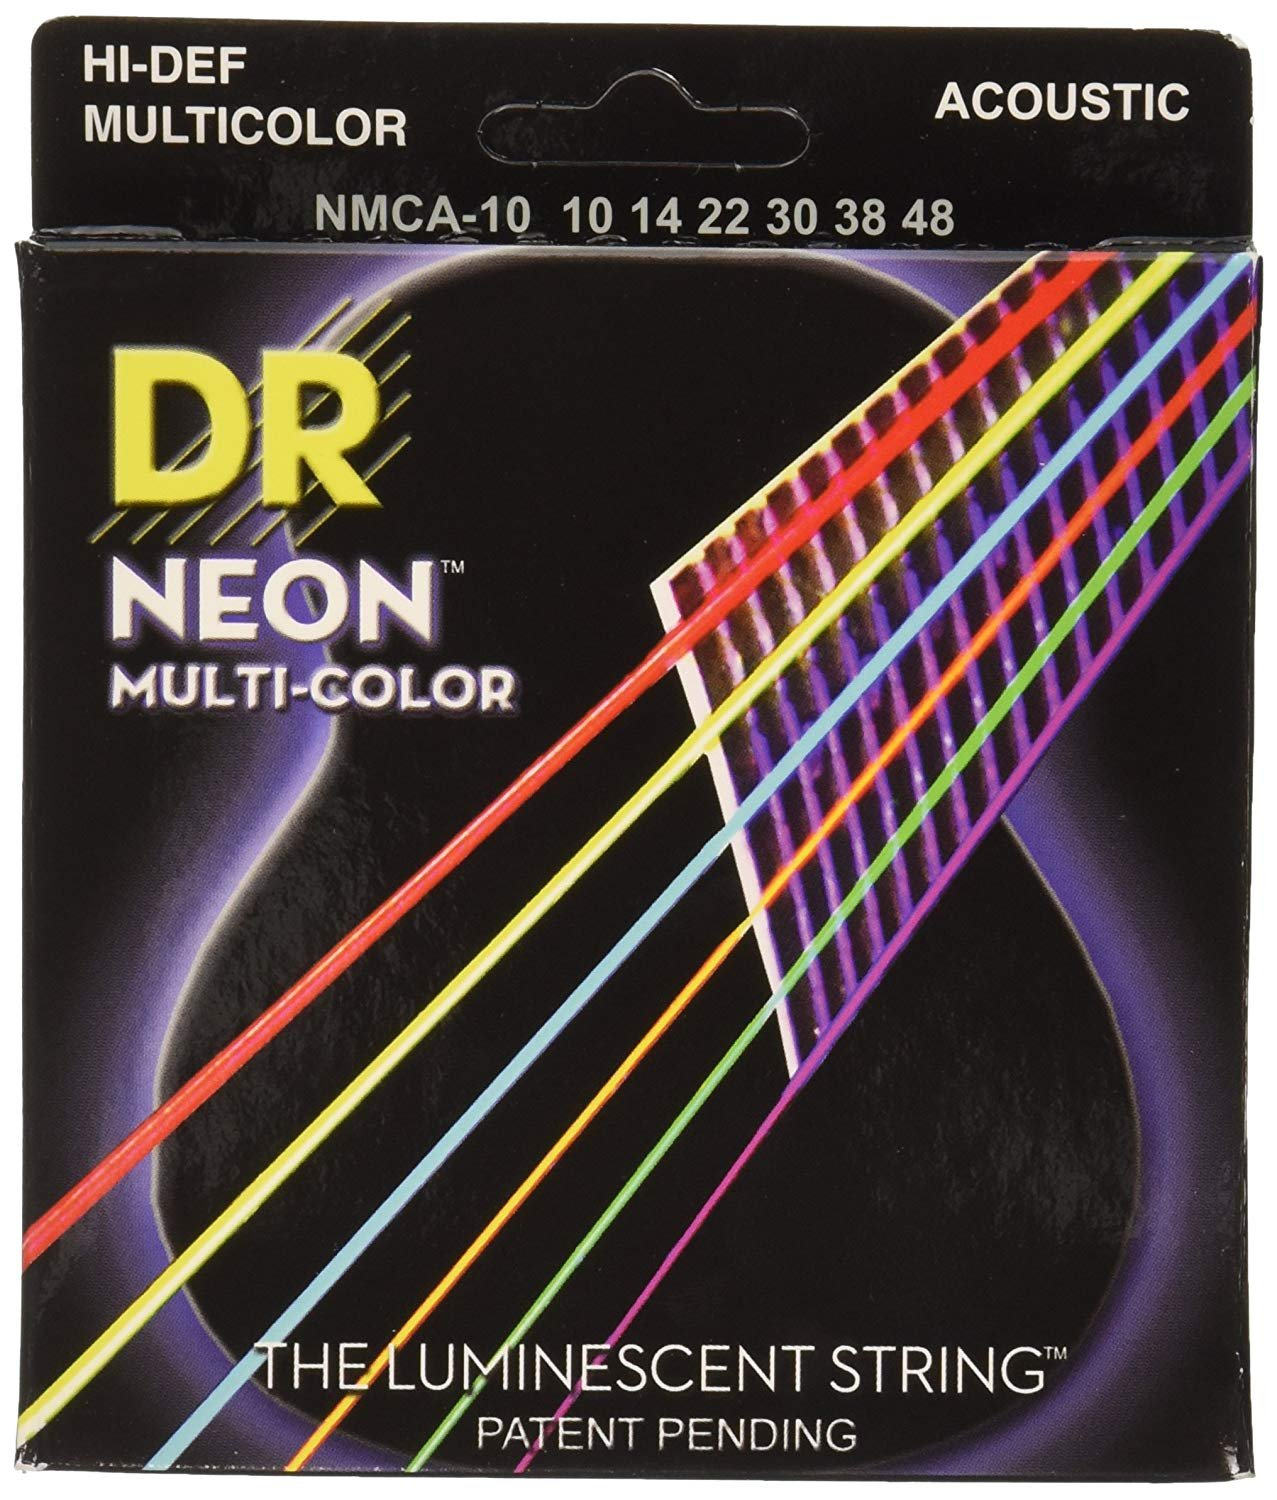 DR Hi-Def Multi-Color Neon Acoustic Strings 10-48